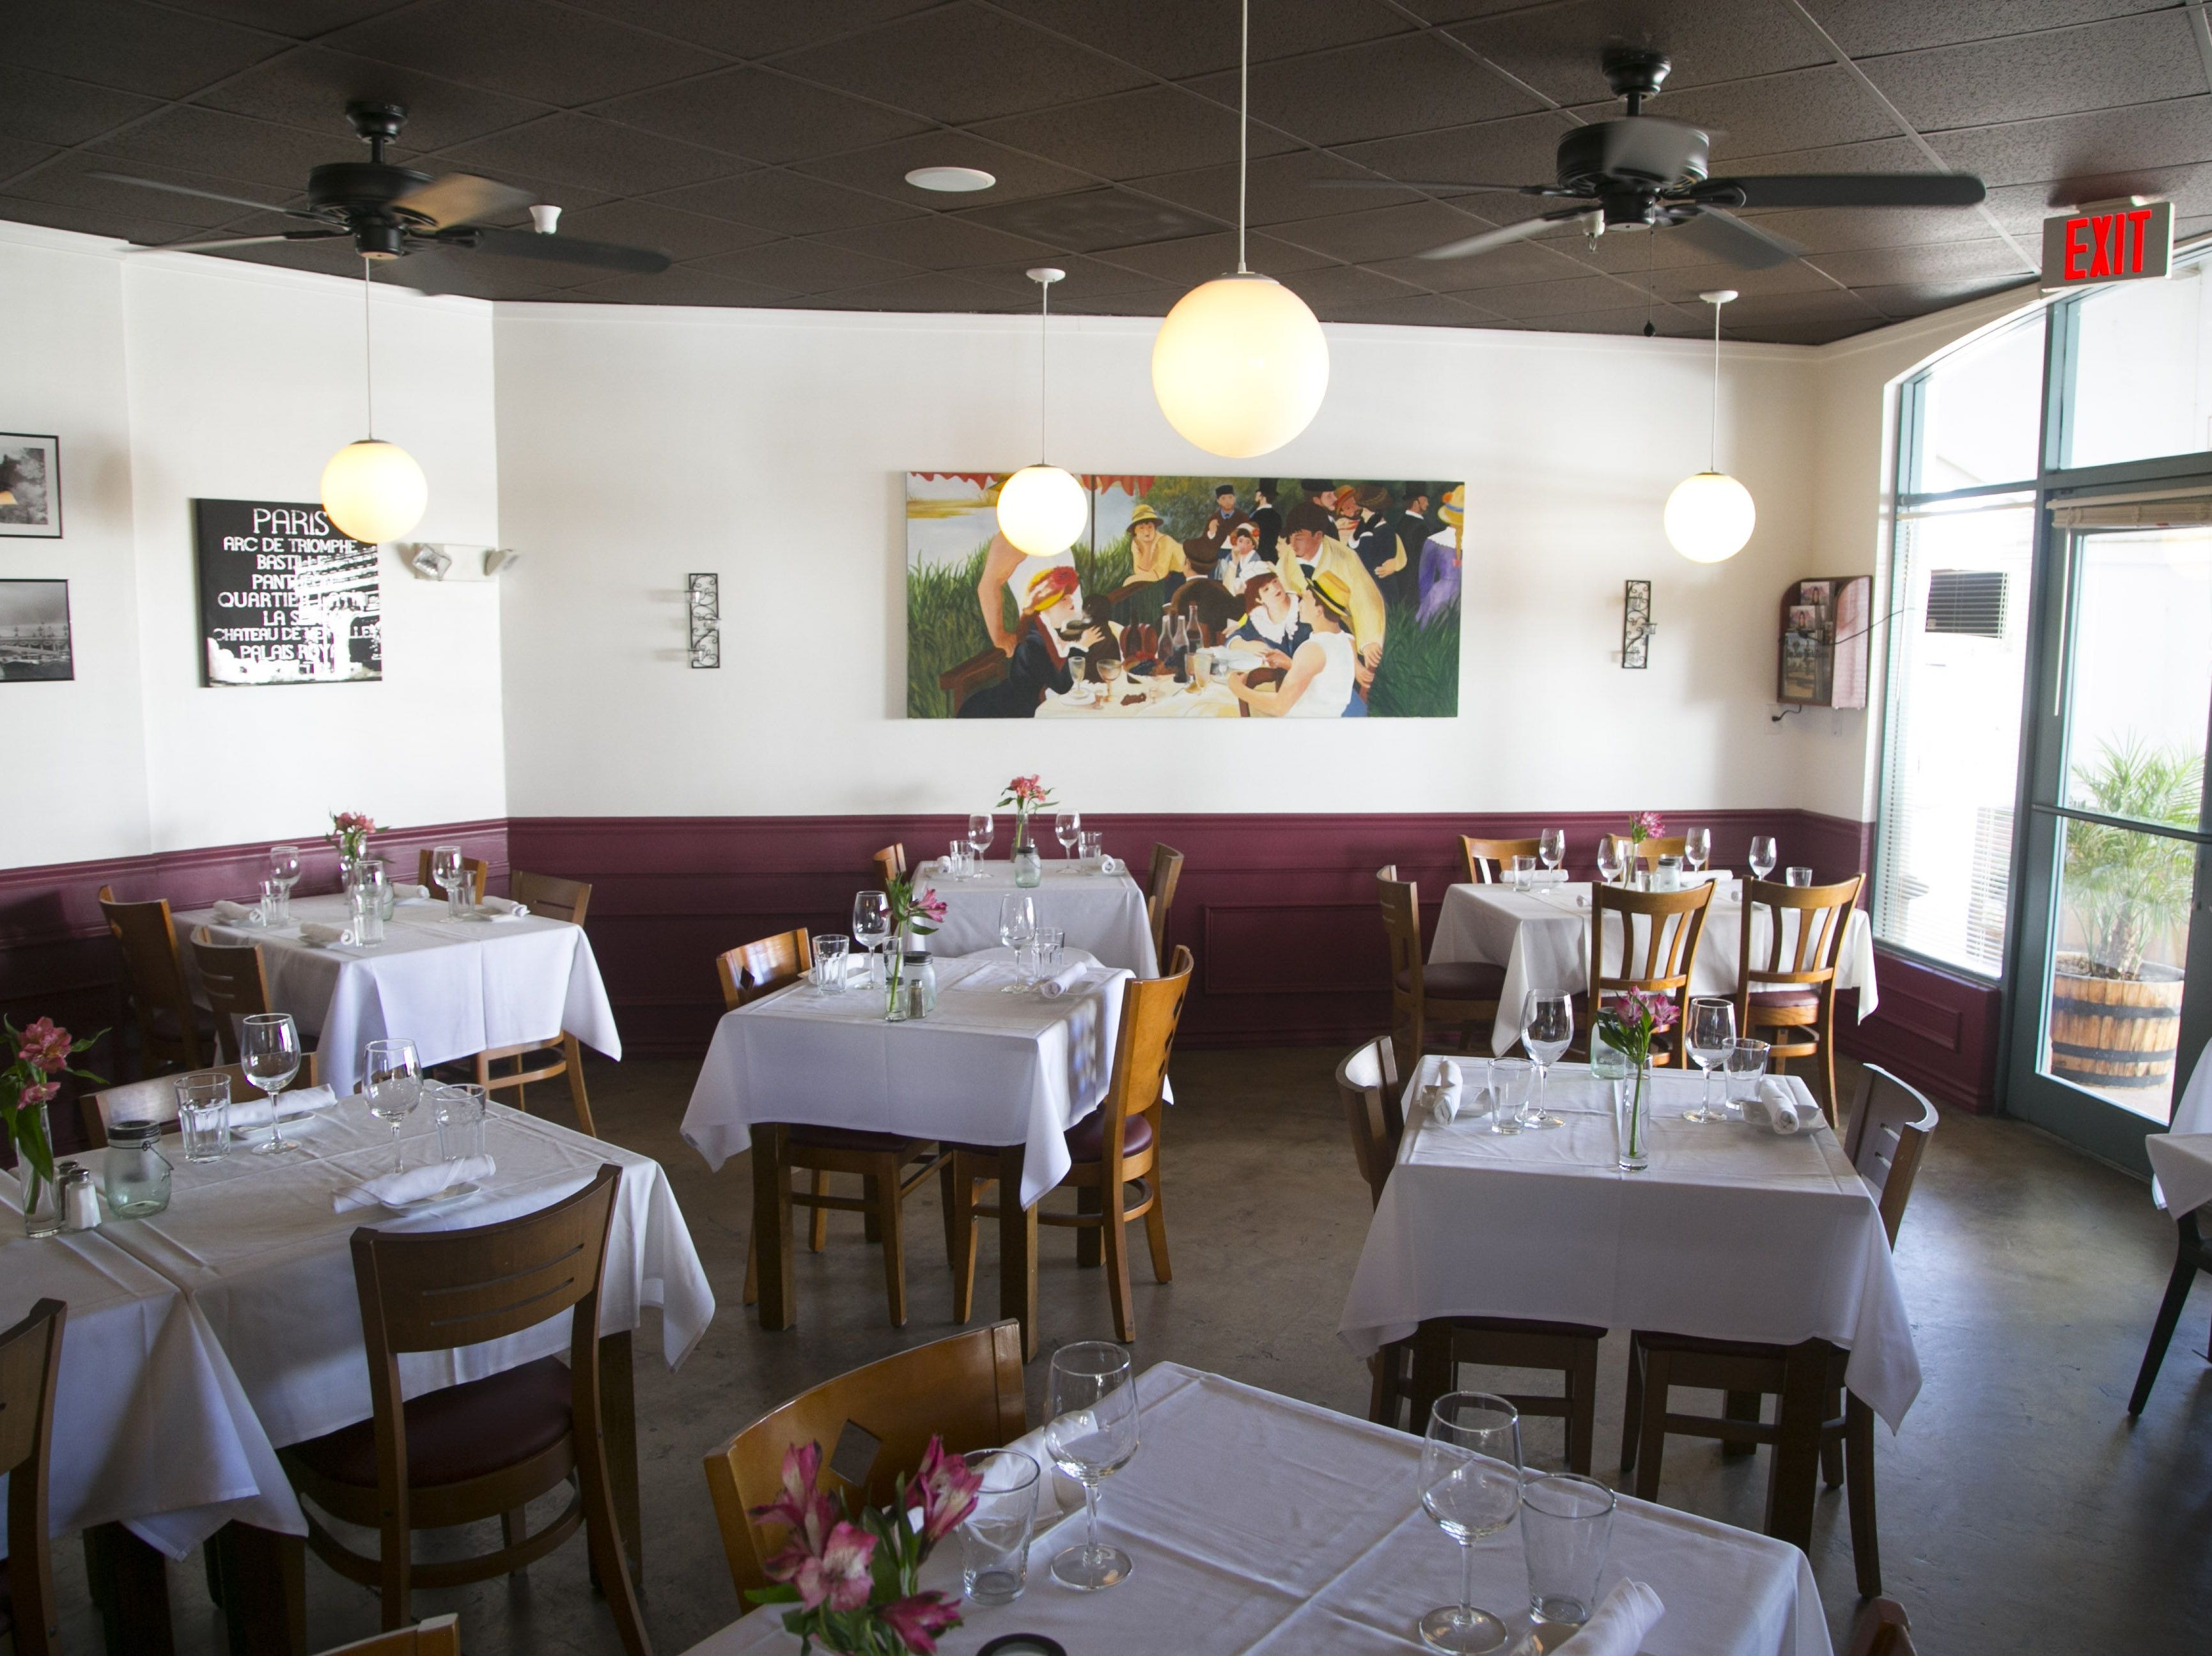 VOILA FRENCH BISTRO | A three-course prix fixe menu ($49) will be served 10 a.m.-1:45 p.m. and include a choice of champagne, mimosa, red wine or white wine. Burgundy snails with parsley butter andgarlic and a nicoise salad are among starter options. Entrée choices include quiche Lorraine, croque madame, eggs Benedict, eggs Florentine and beef bourguignon. Crème brûlée will be served for dessert. For ages 12 and younger, a two-course menu ($20) will be available.DETAILS: 10135 E. Via Linda Road, Scottsdale. 480-614-5600, voilafrenchbistro.com.